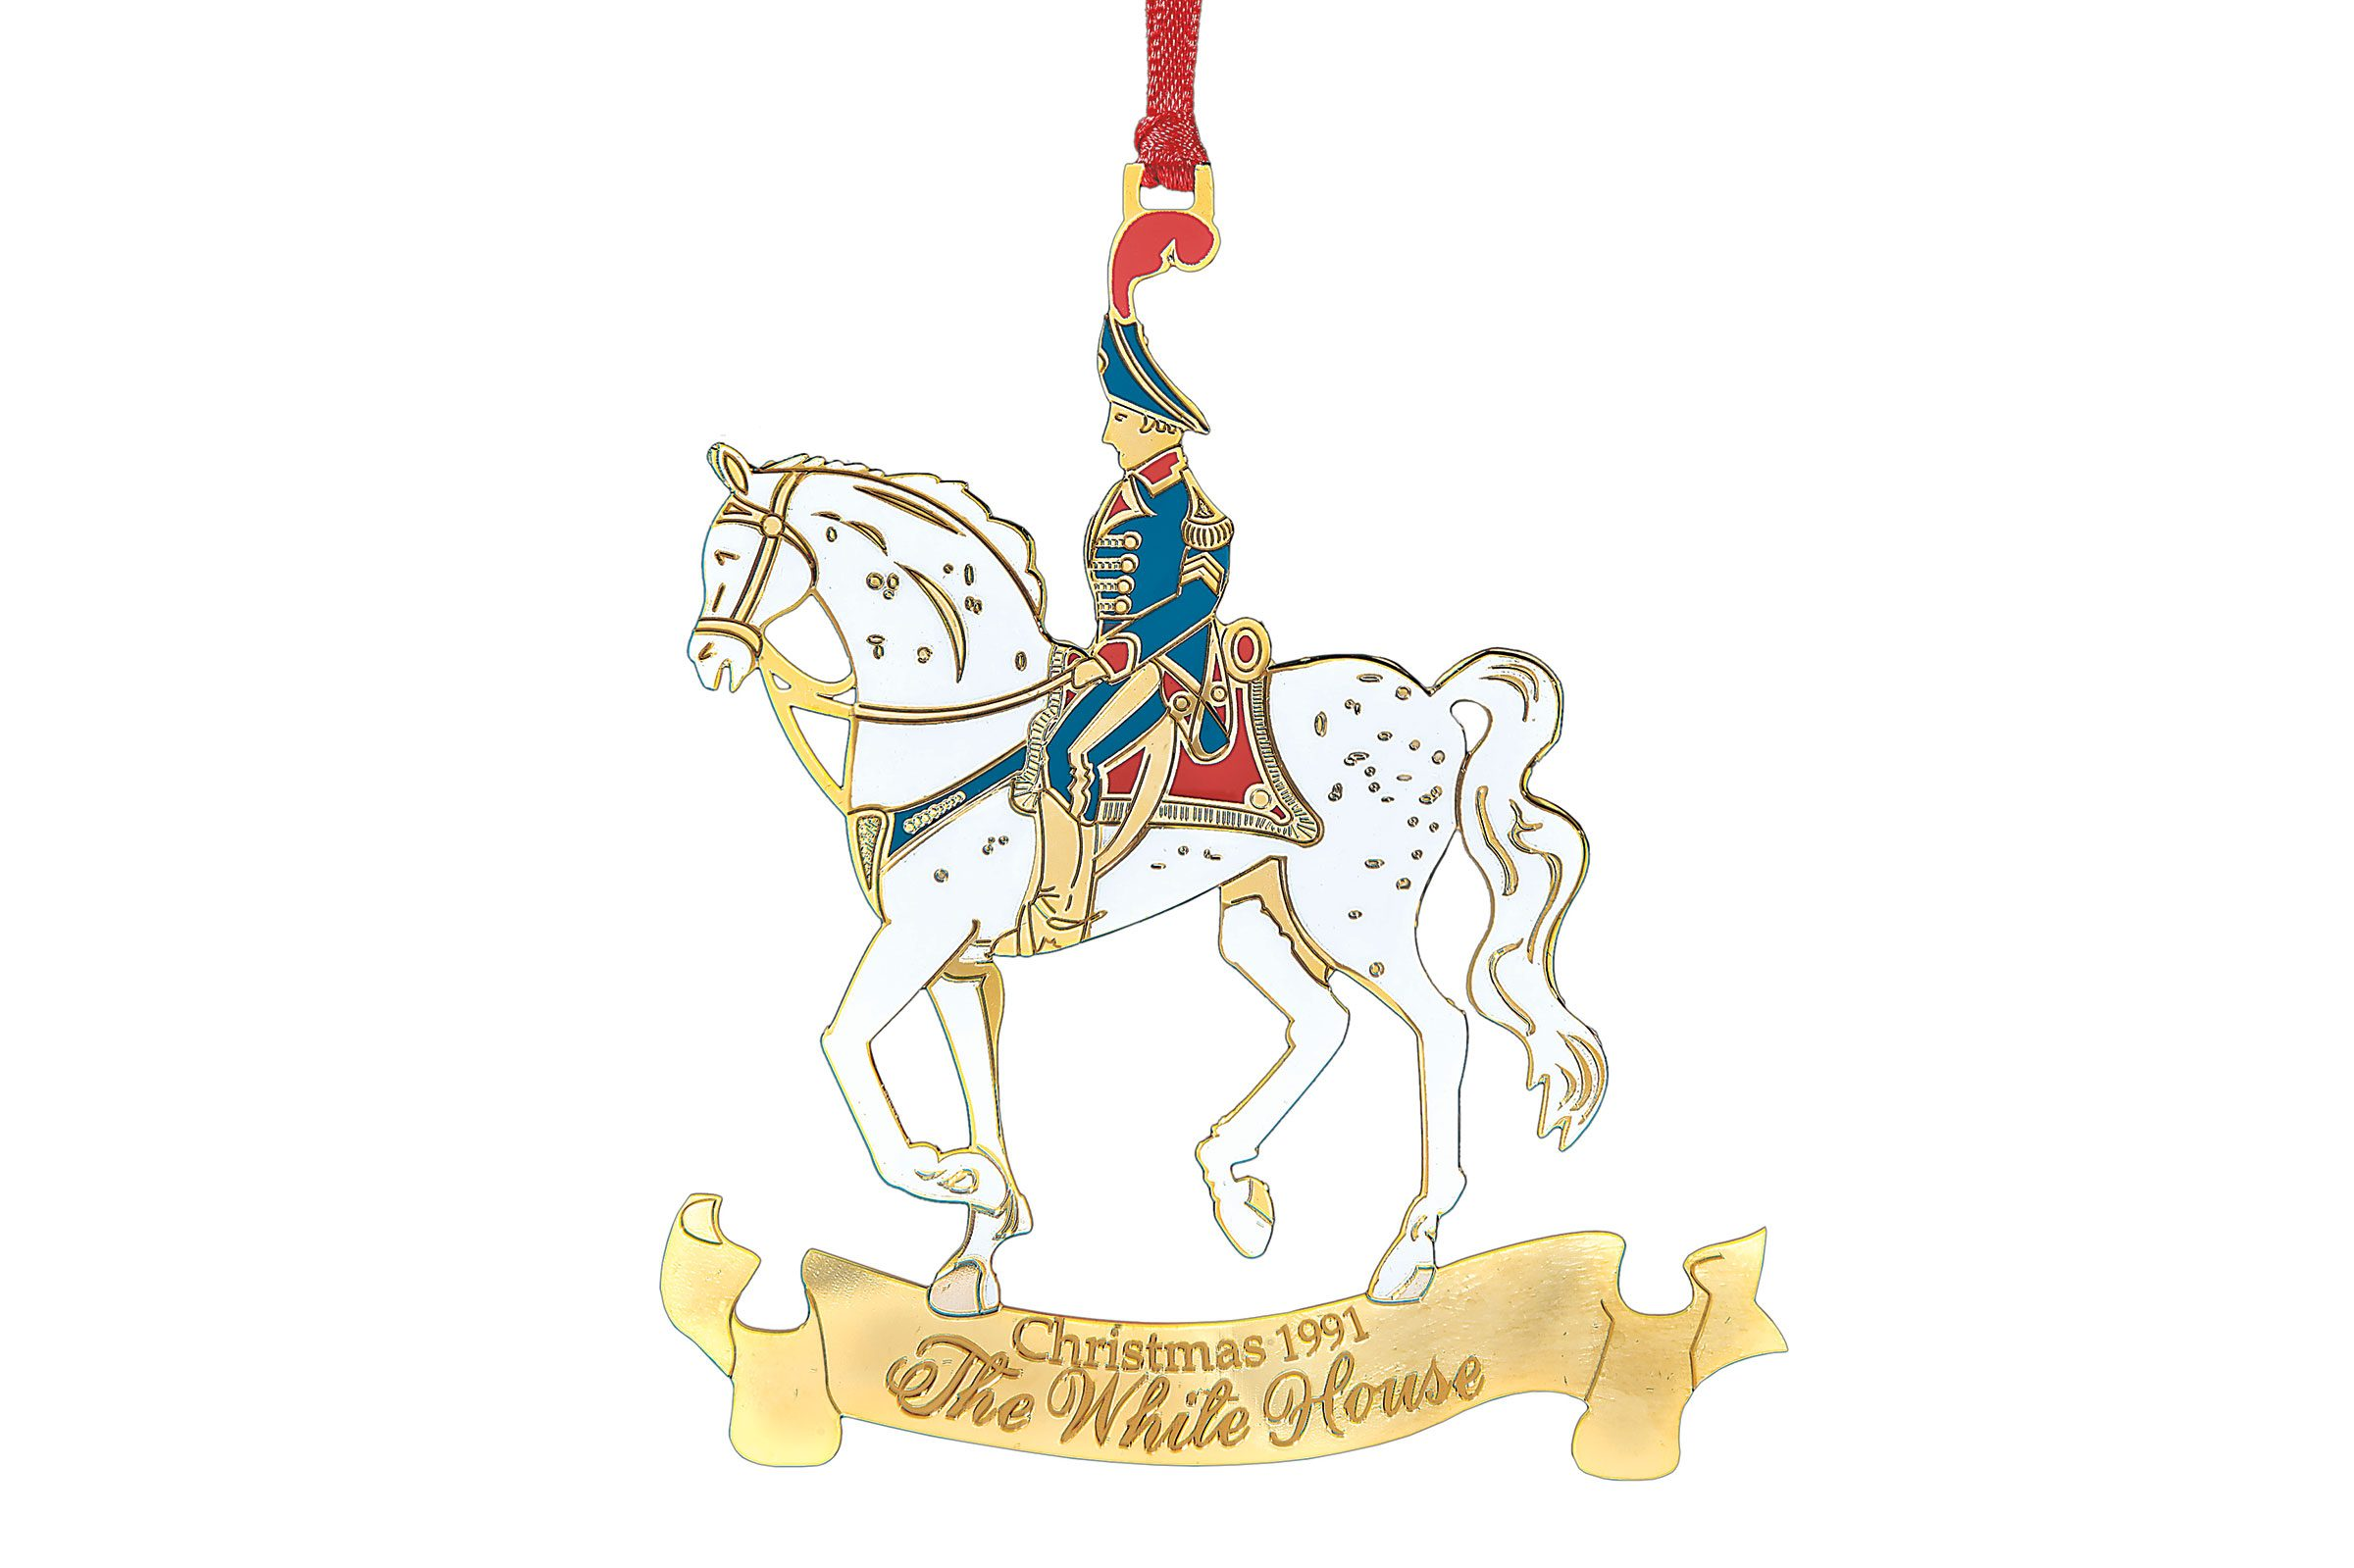 Career christmas ornaments - White House Historical Association The First White House Christmas Ornament